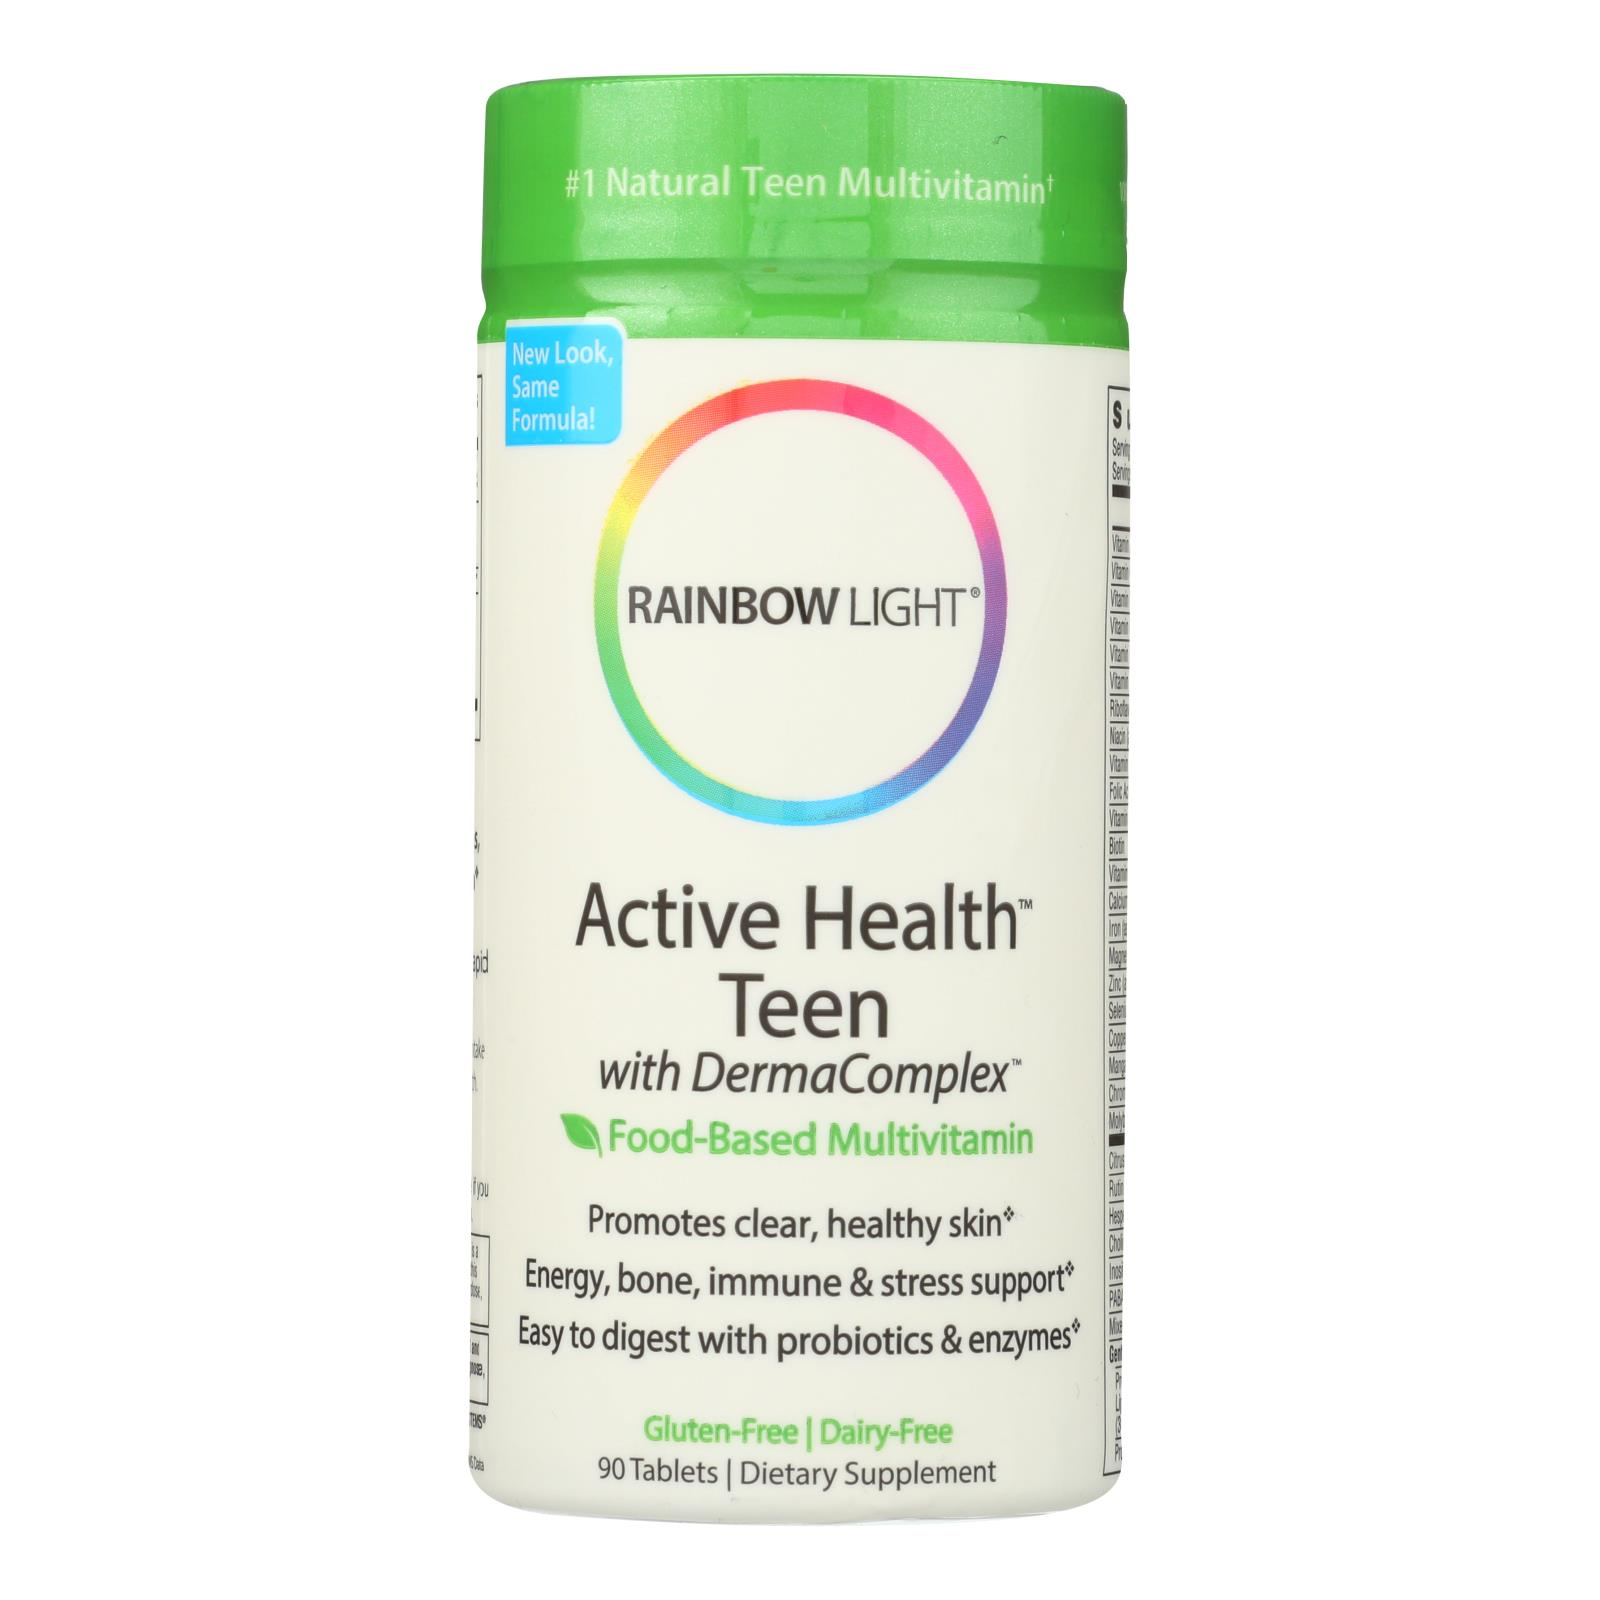 Rainbow Light Active Health Teen Multivitamin - 90 Tablets